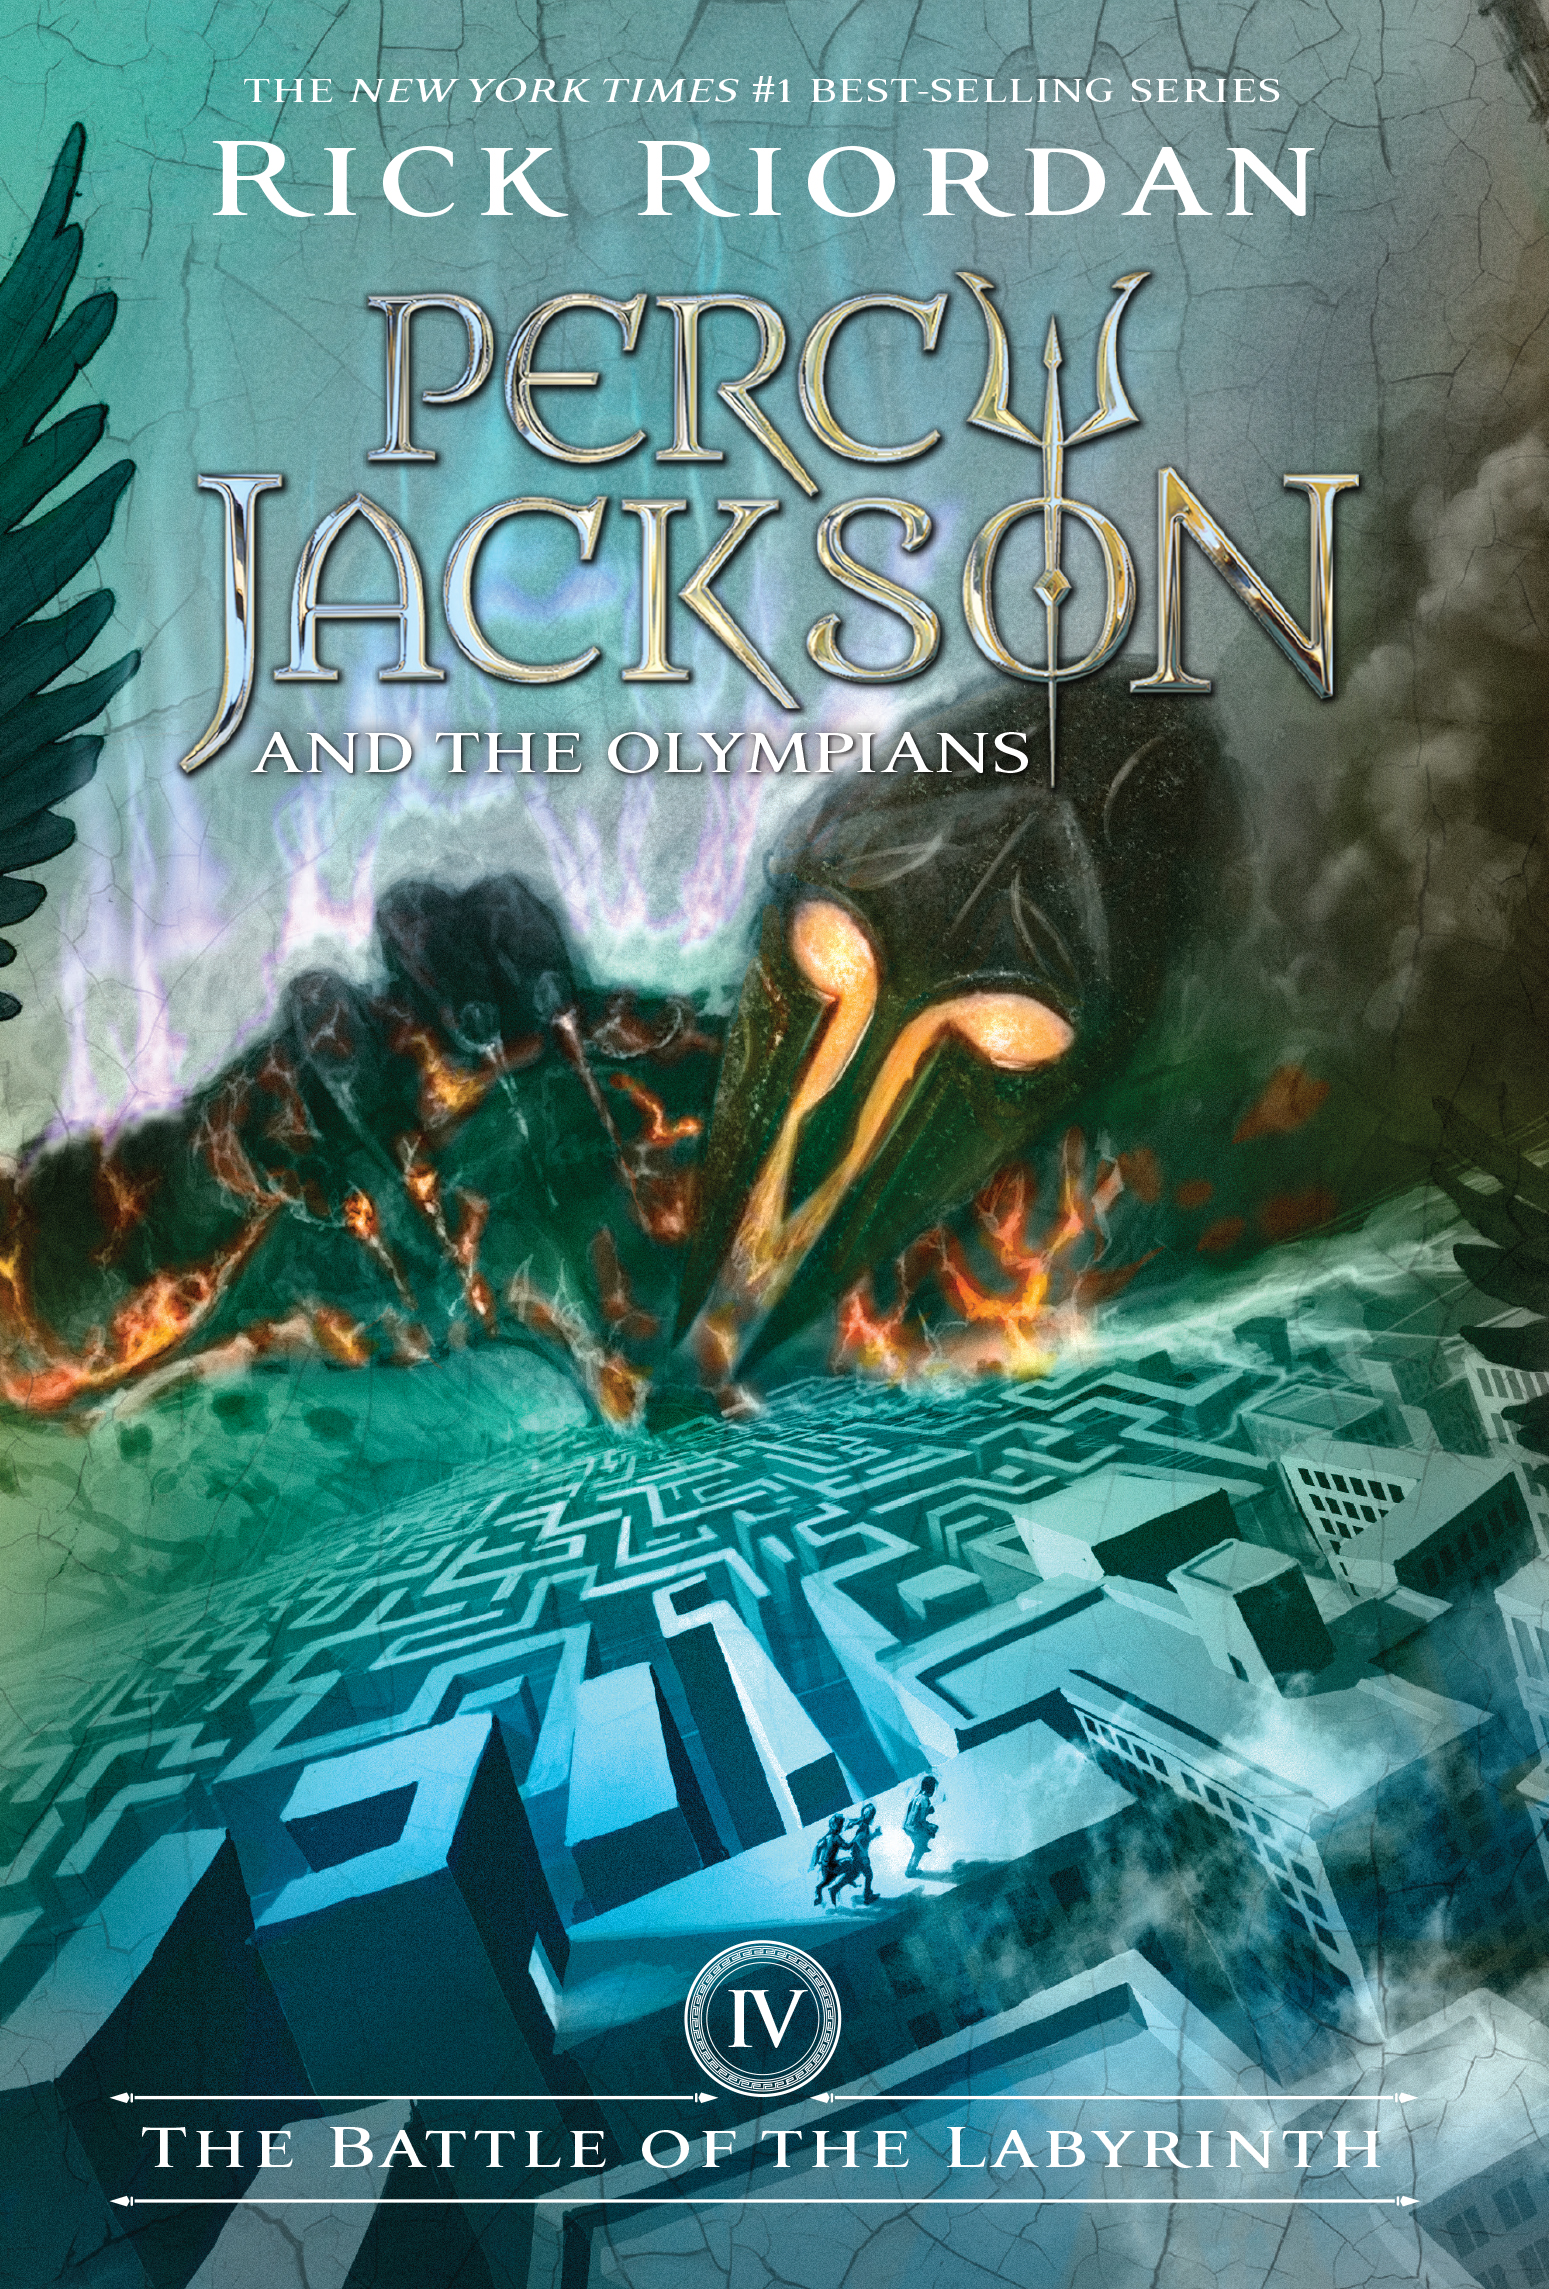 Cover Image of Battle of the Labyrinth, The (Percy Jackson and the Olympians, Book 4)